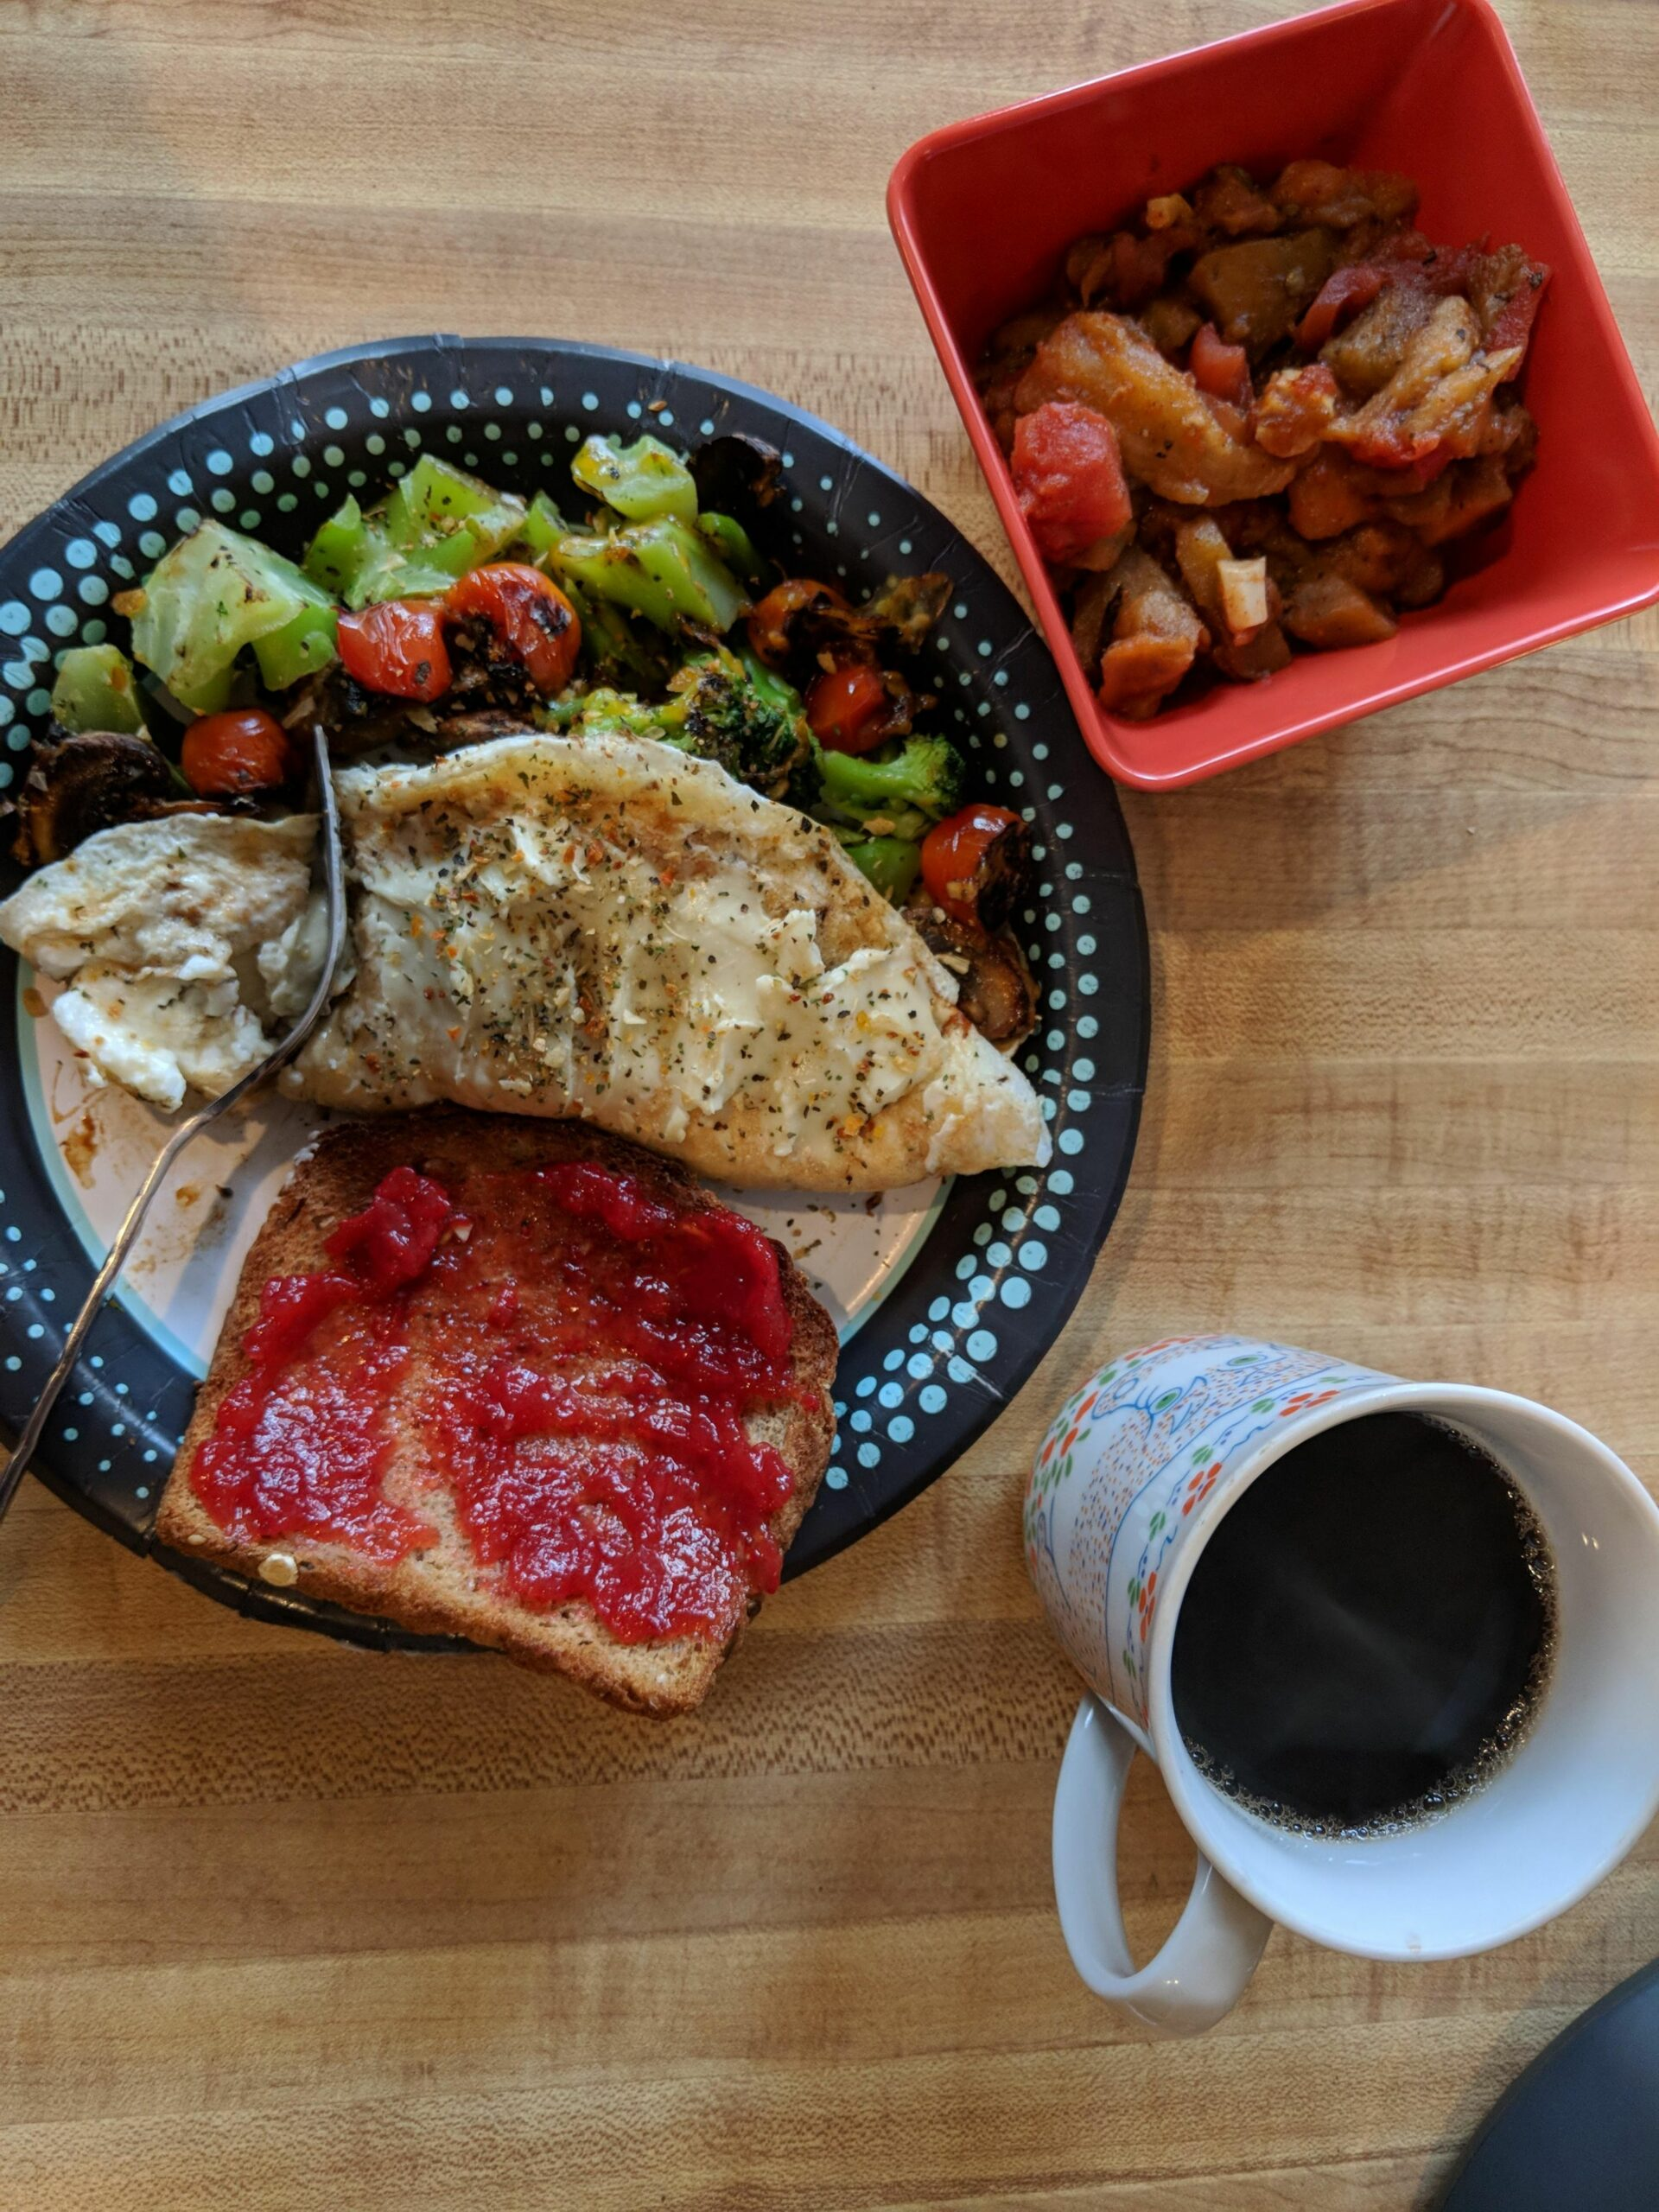 Big breakfast @ 10 calories : 10isplenty - Breakfast Recipes Reddit